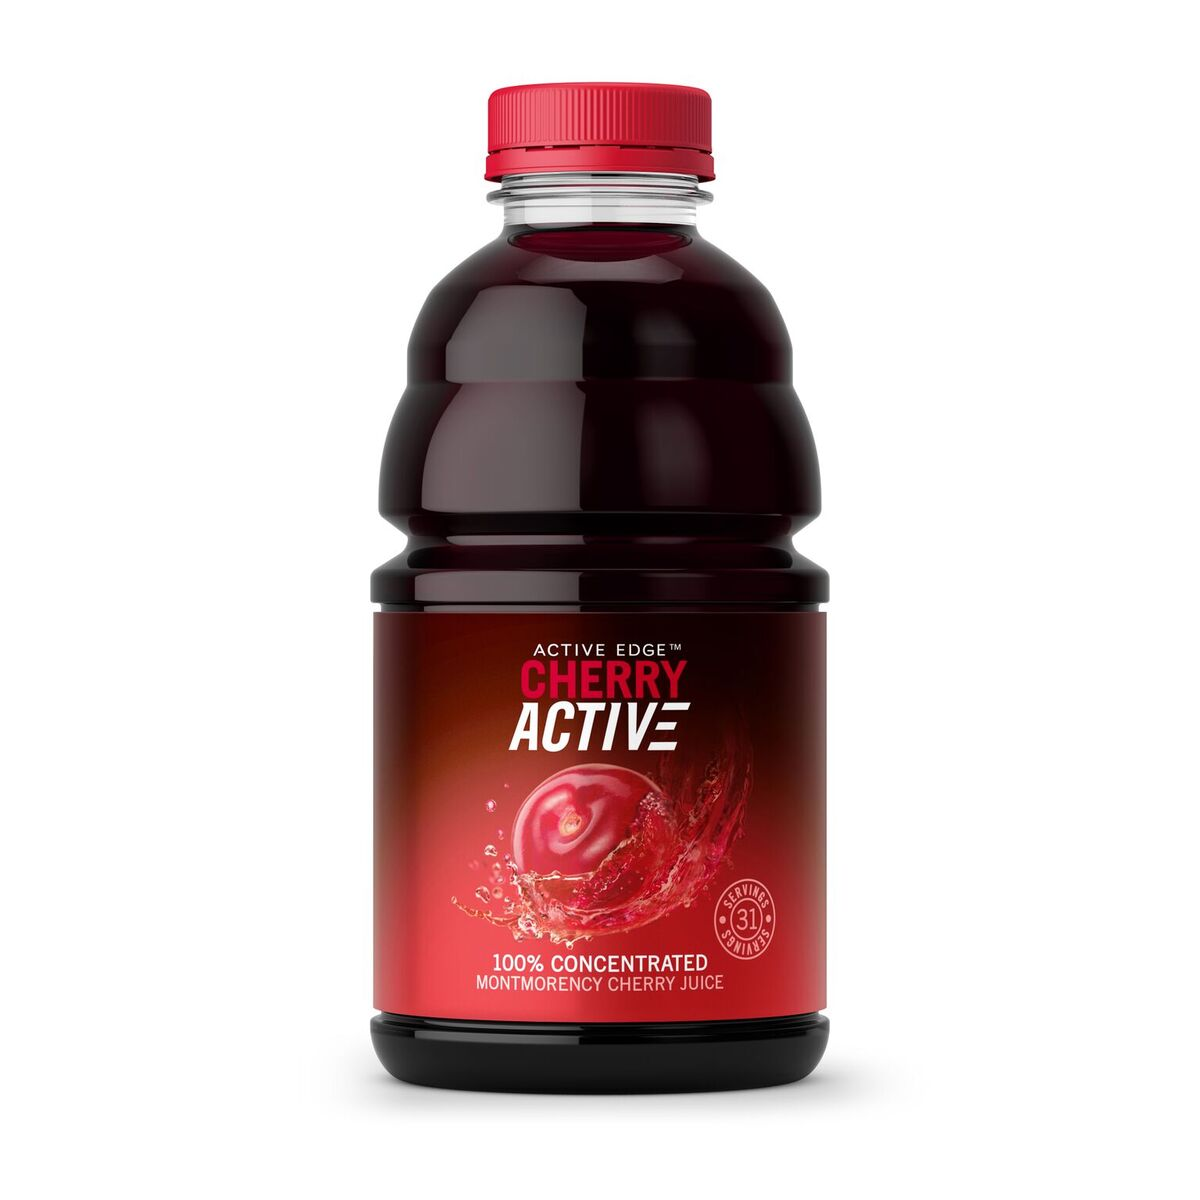 Cherry Active - CherryActive® Concentrate (946 ml x 1) - Montmorency Cherry Juice